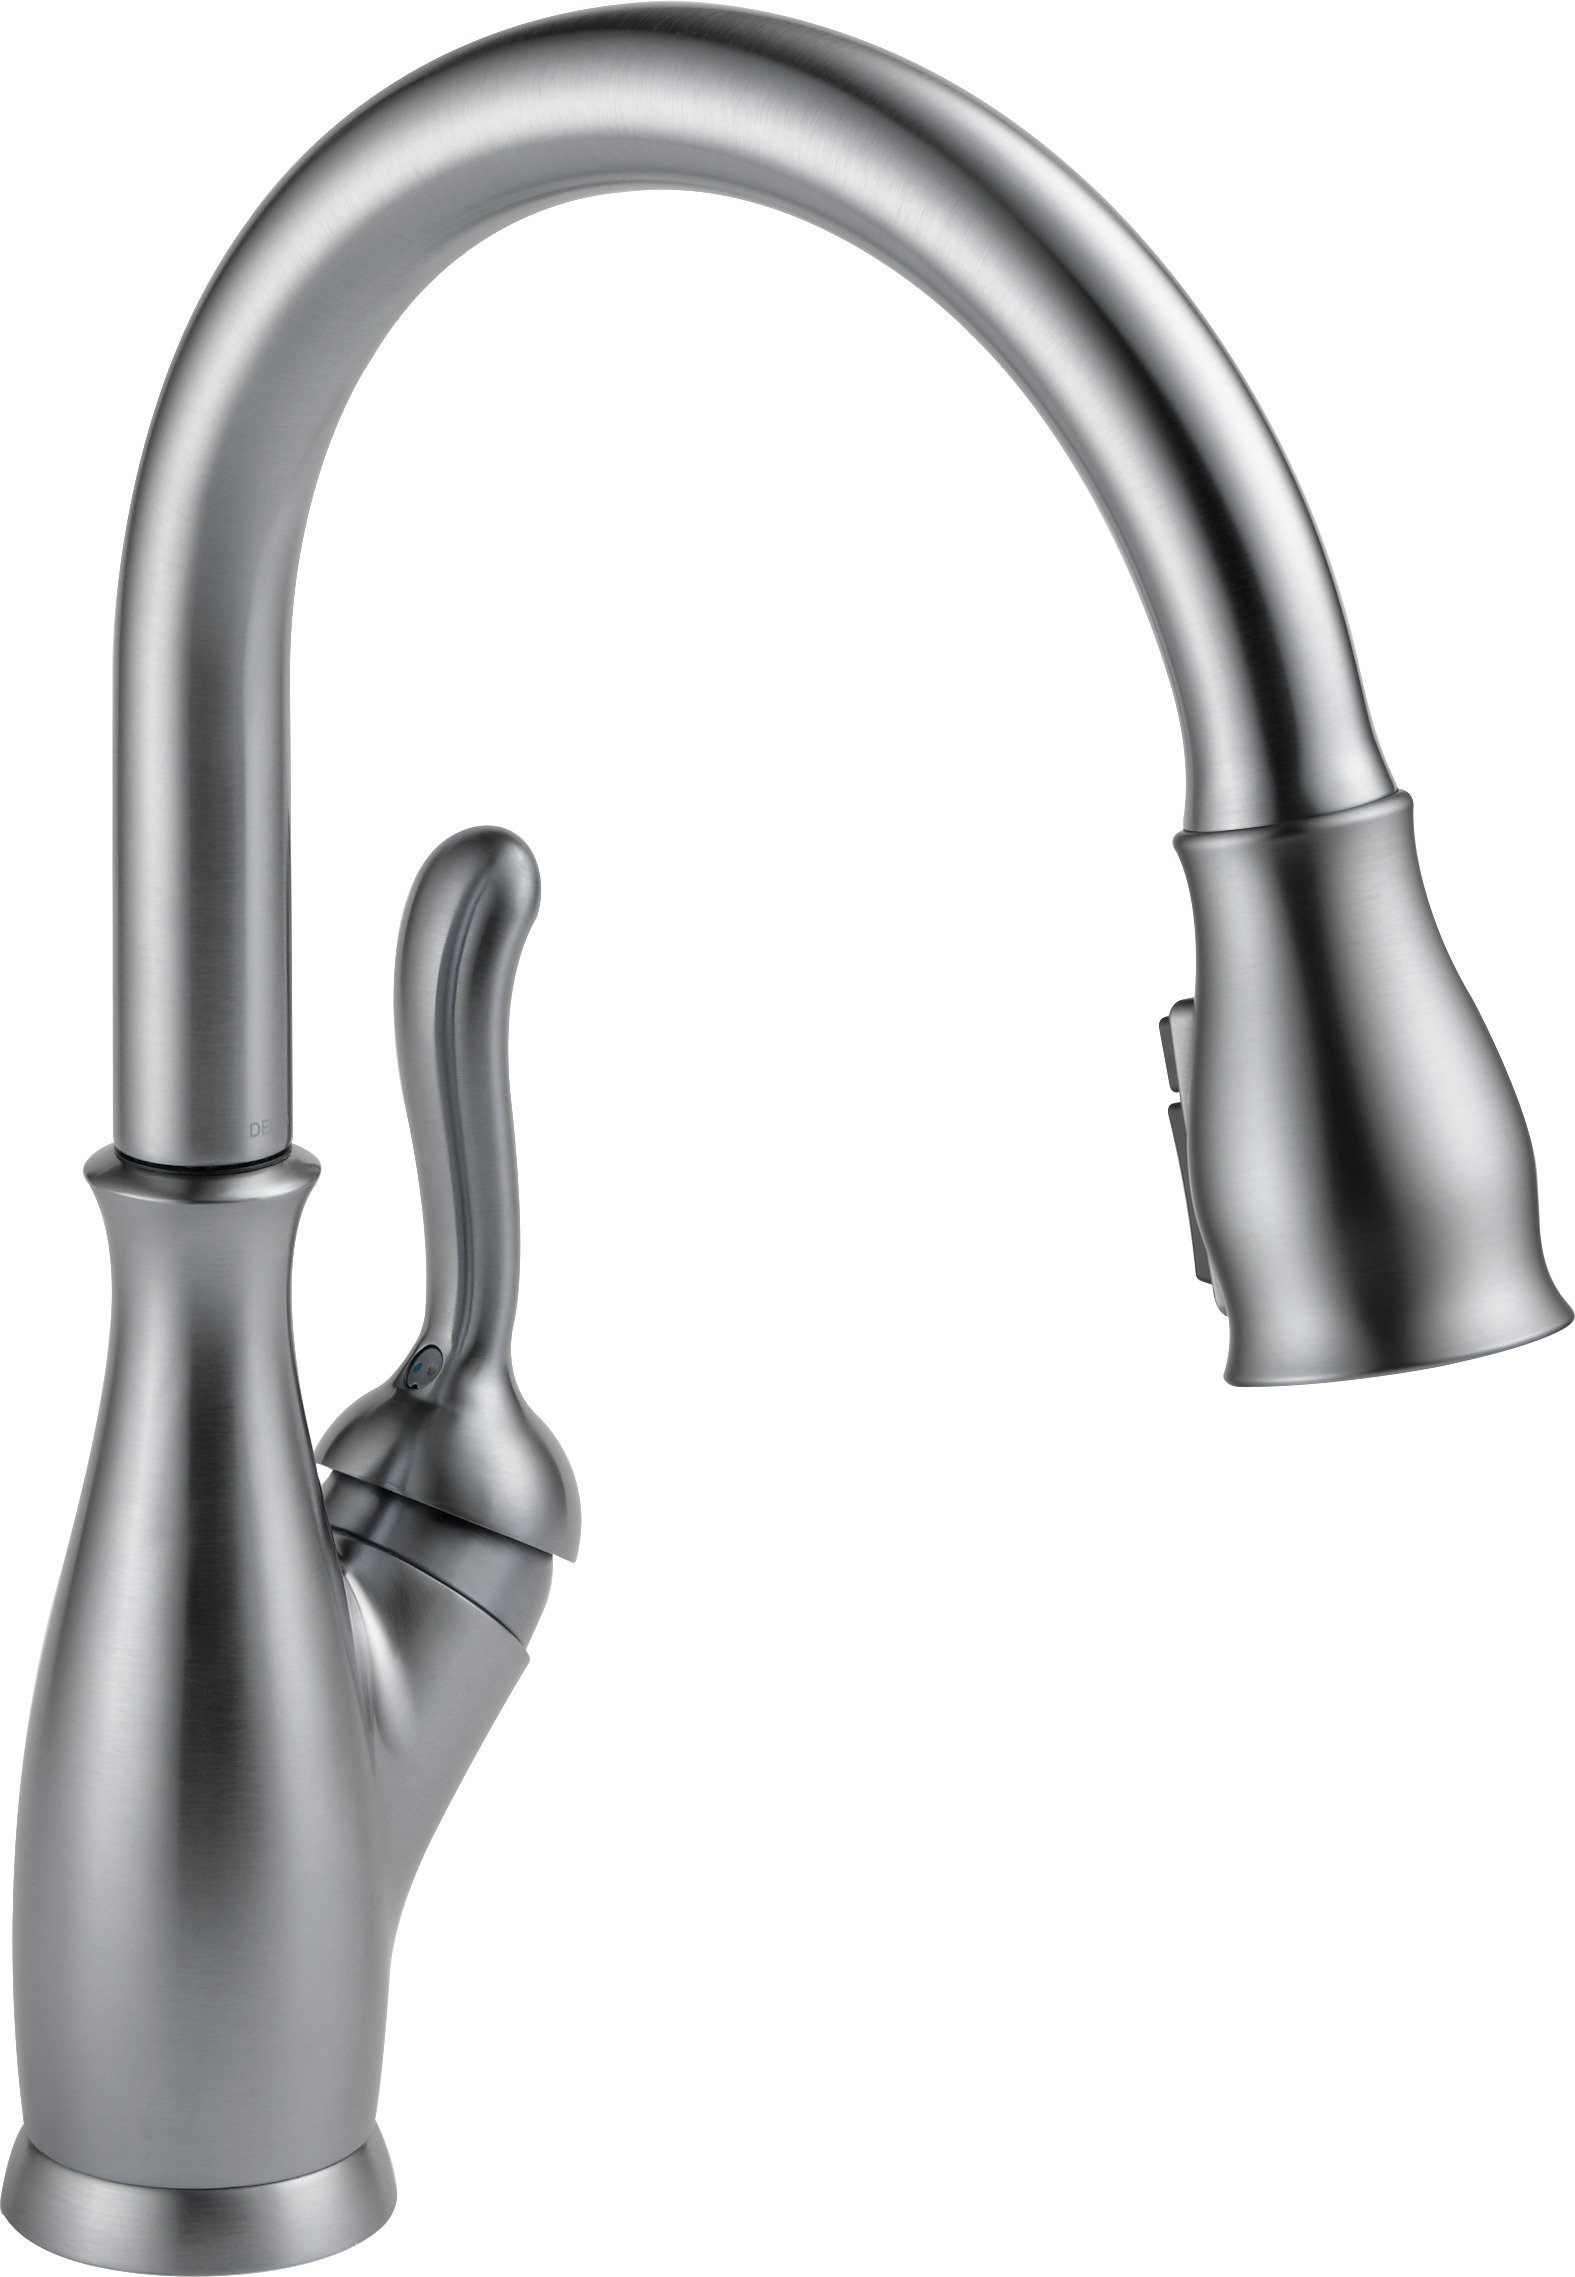 Delta leland 9178 ar dst single handle pull down kitchen faucet with magnatite docking and shieldspray technology arctic stainless